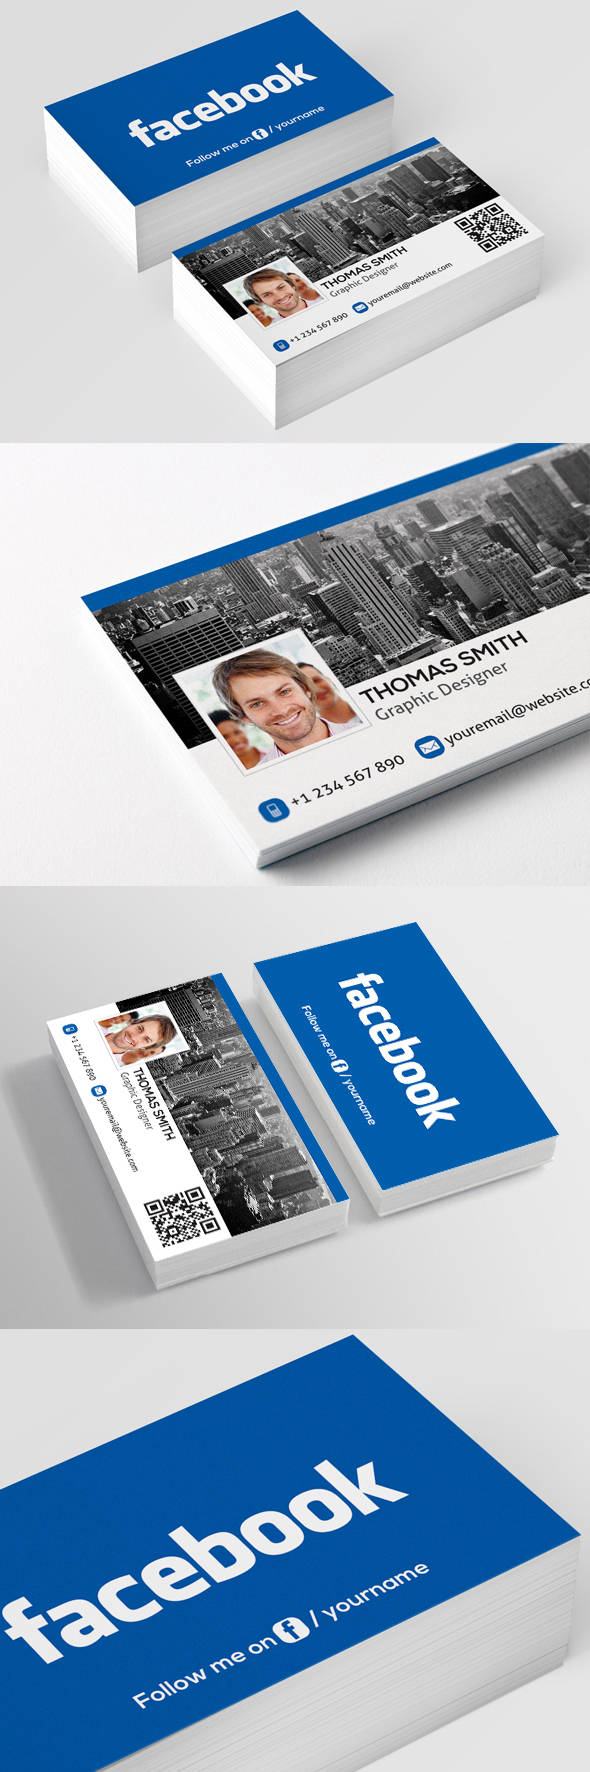 50 best free business card templates 2014 business cards business cards templates 21 fbccfo Images